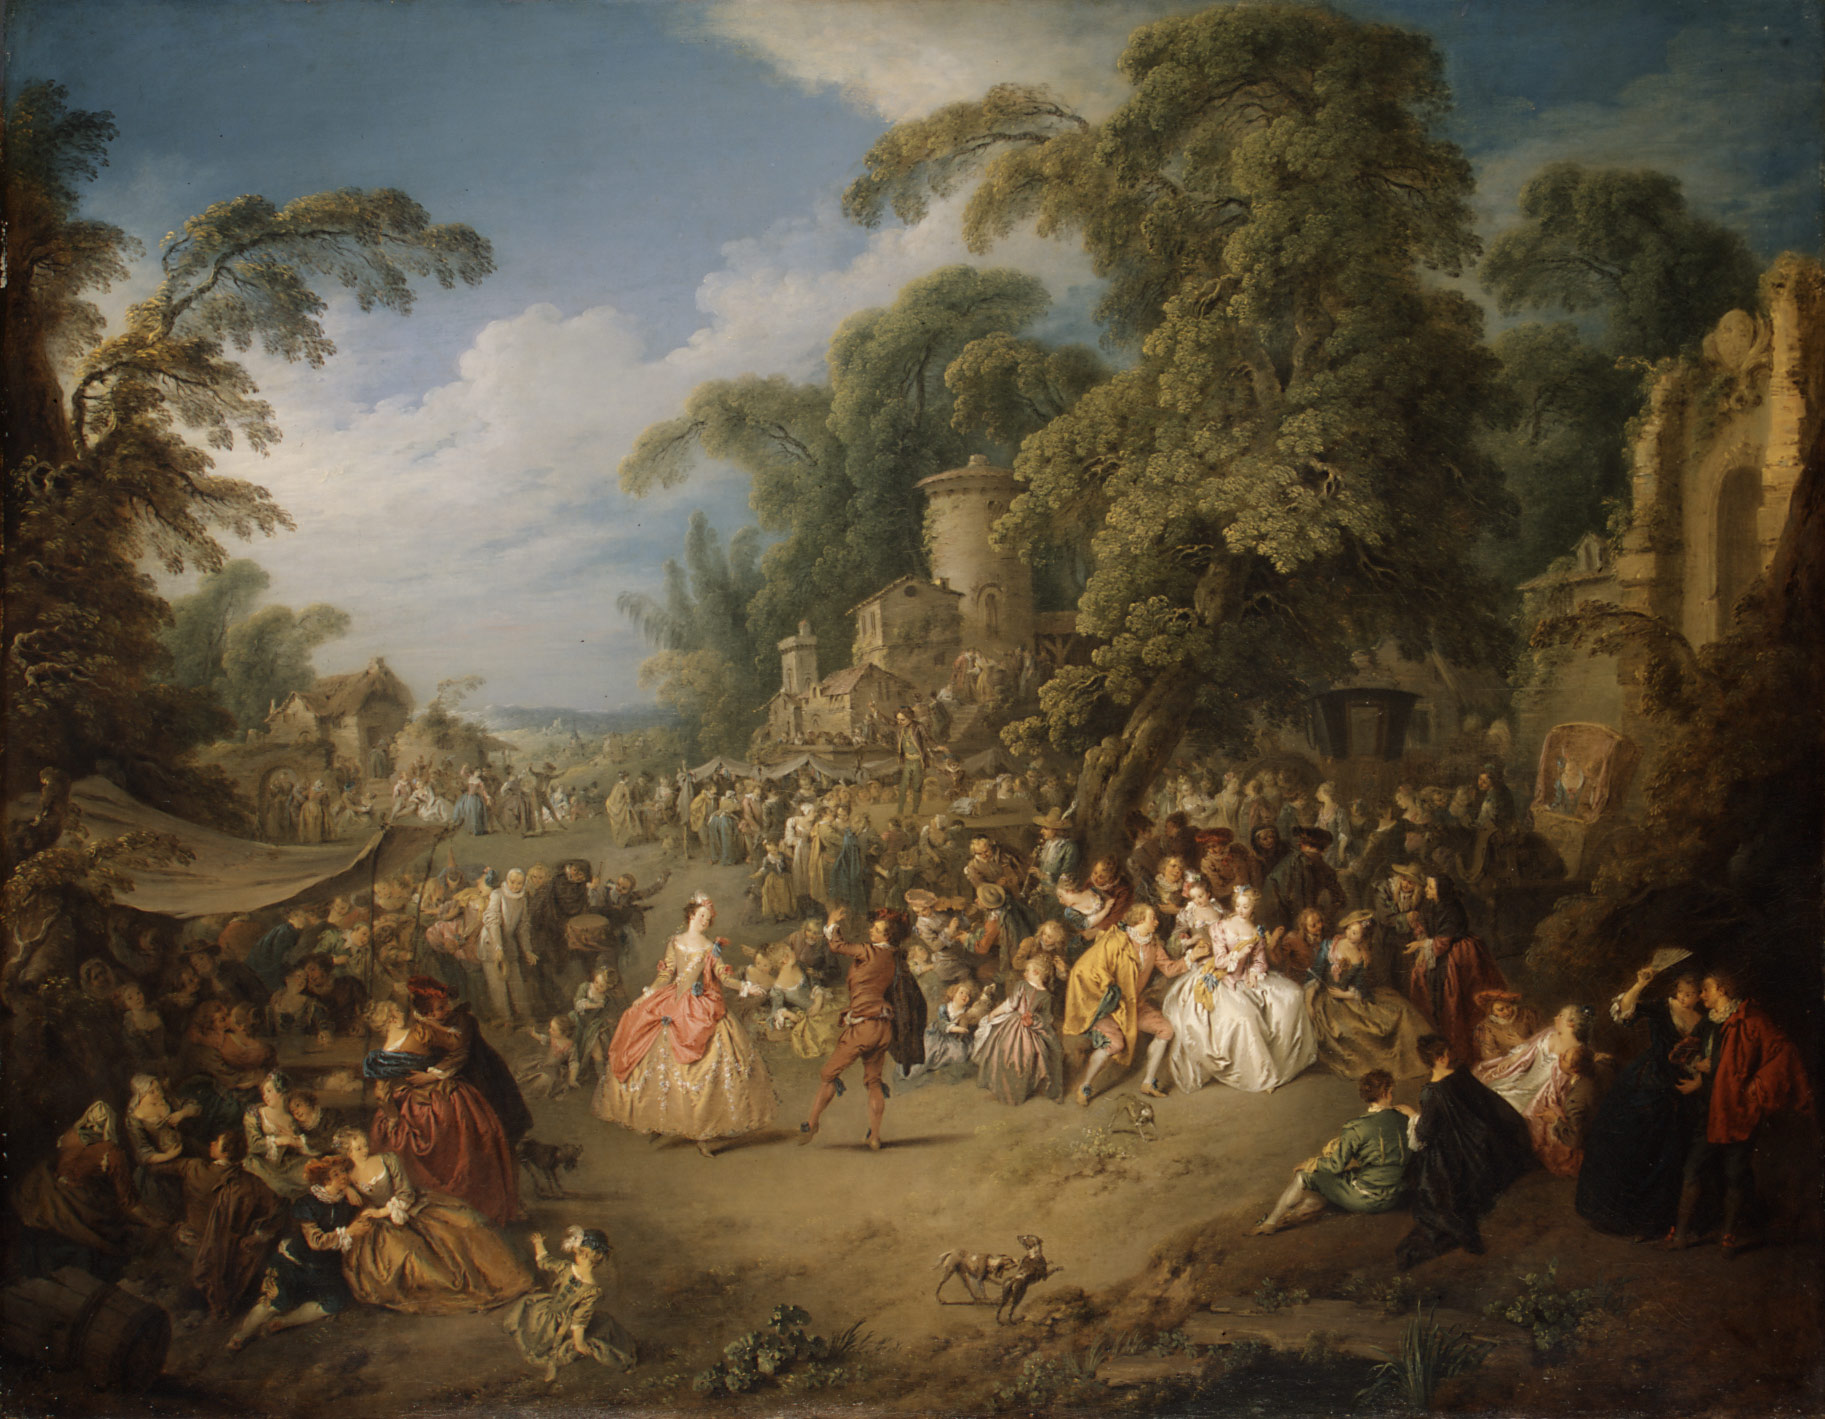 The Fair at Bezons